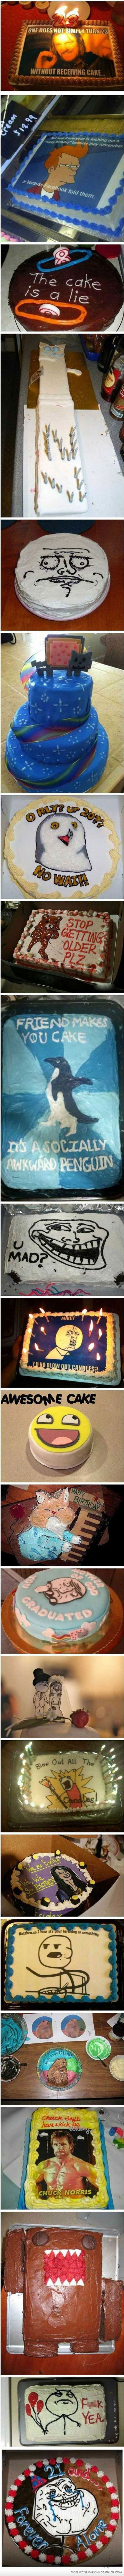 Internet meme cakes! Too epic for words! XD